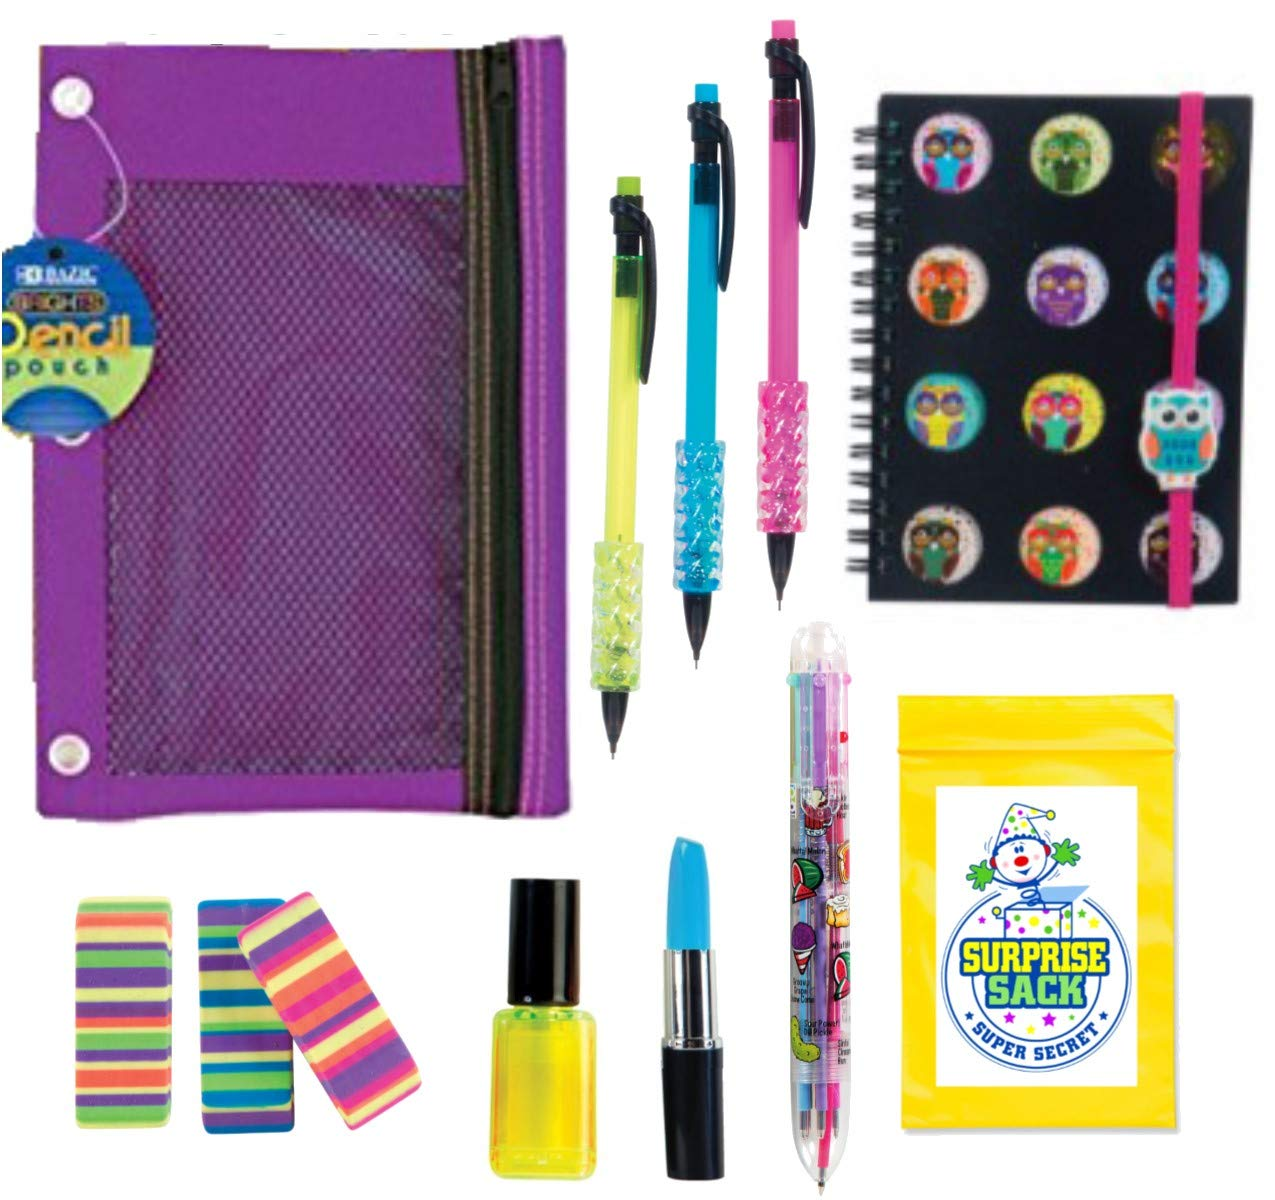 Kids Themed Stationary Accessories-Pencils, Pens, Erasers & 1 Secret Surprise Sack (TM) - Unique Back to School Supplies, Stocking Stuffers, Easter Basket Fillers (Girls Rule - Purple Pouch)